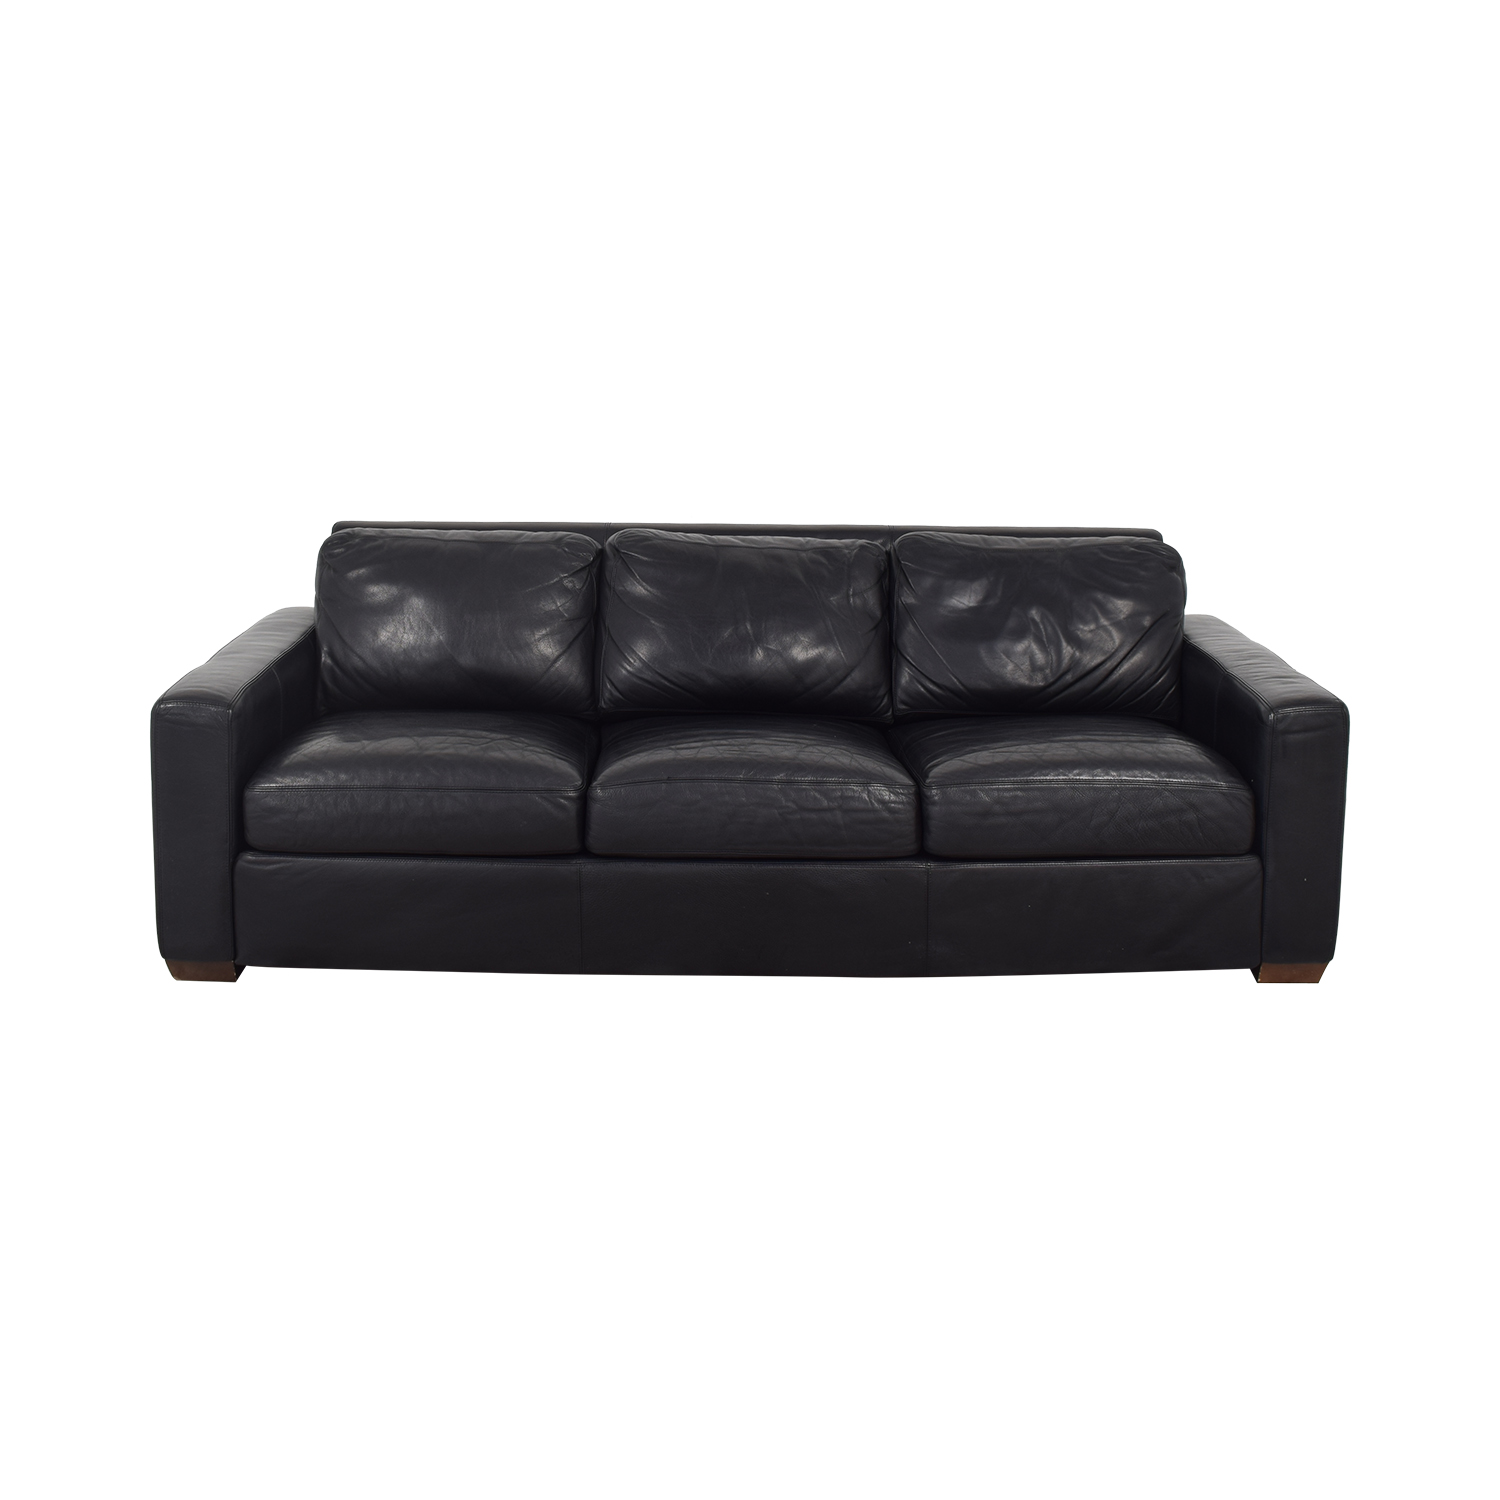 shop Design Within Reach Design Within Reach Portola Sofa online